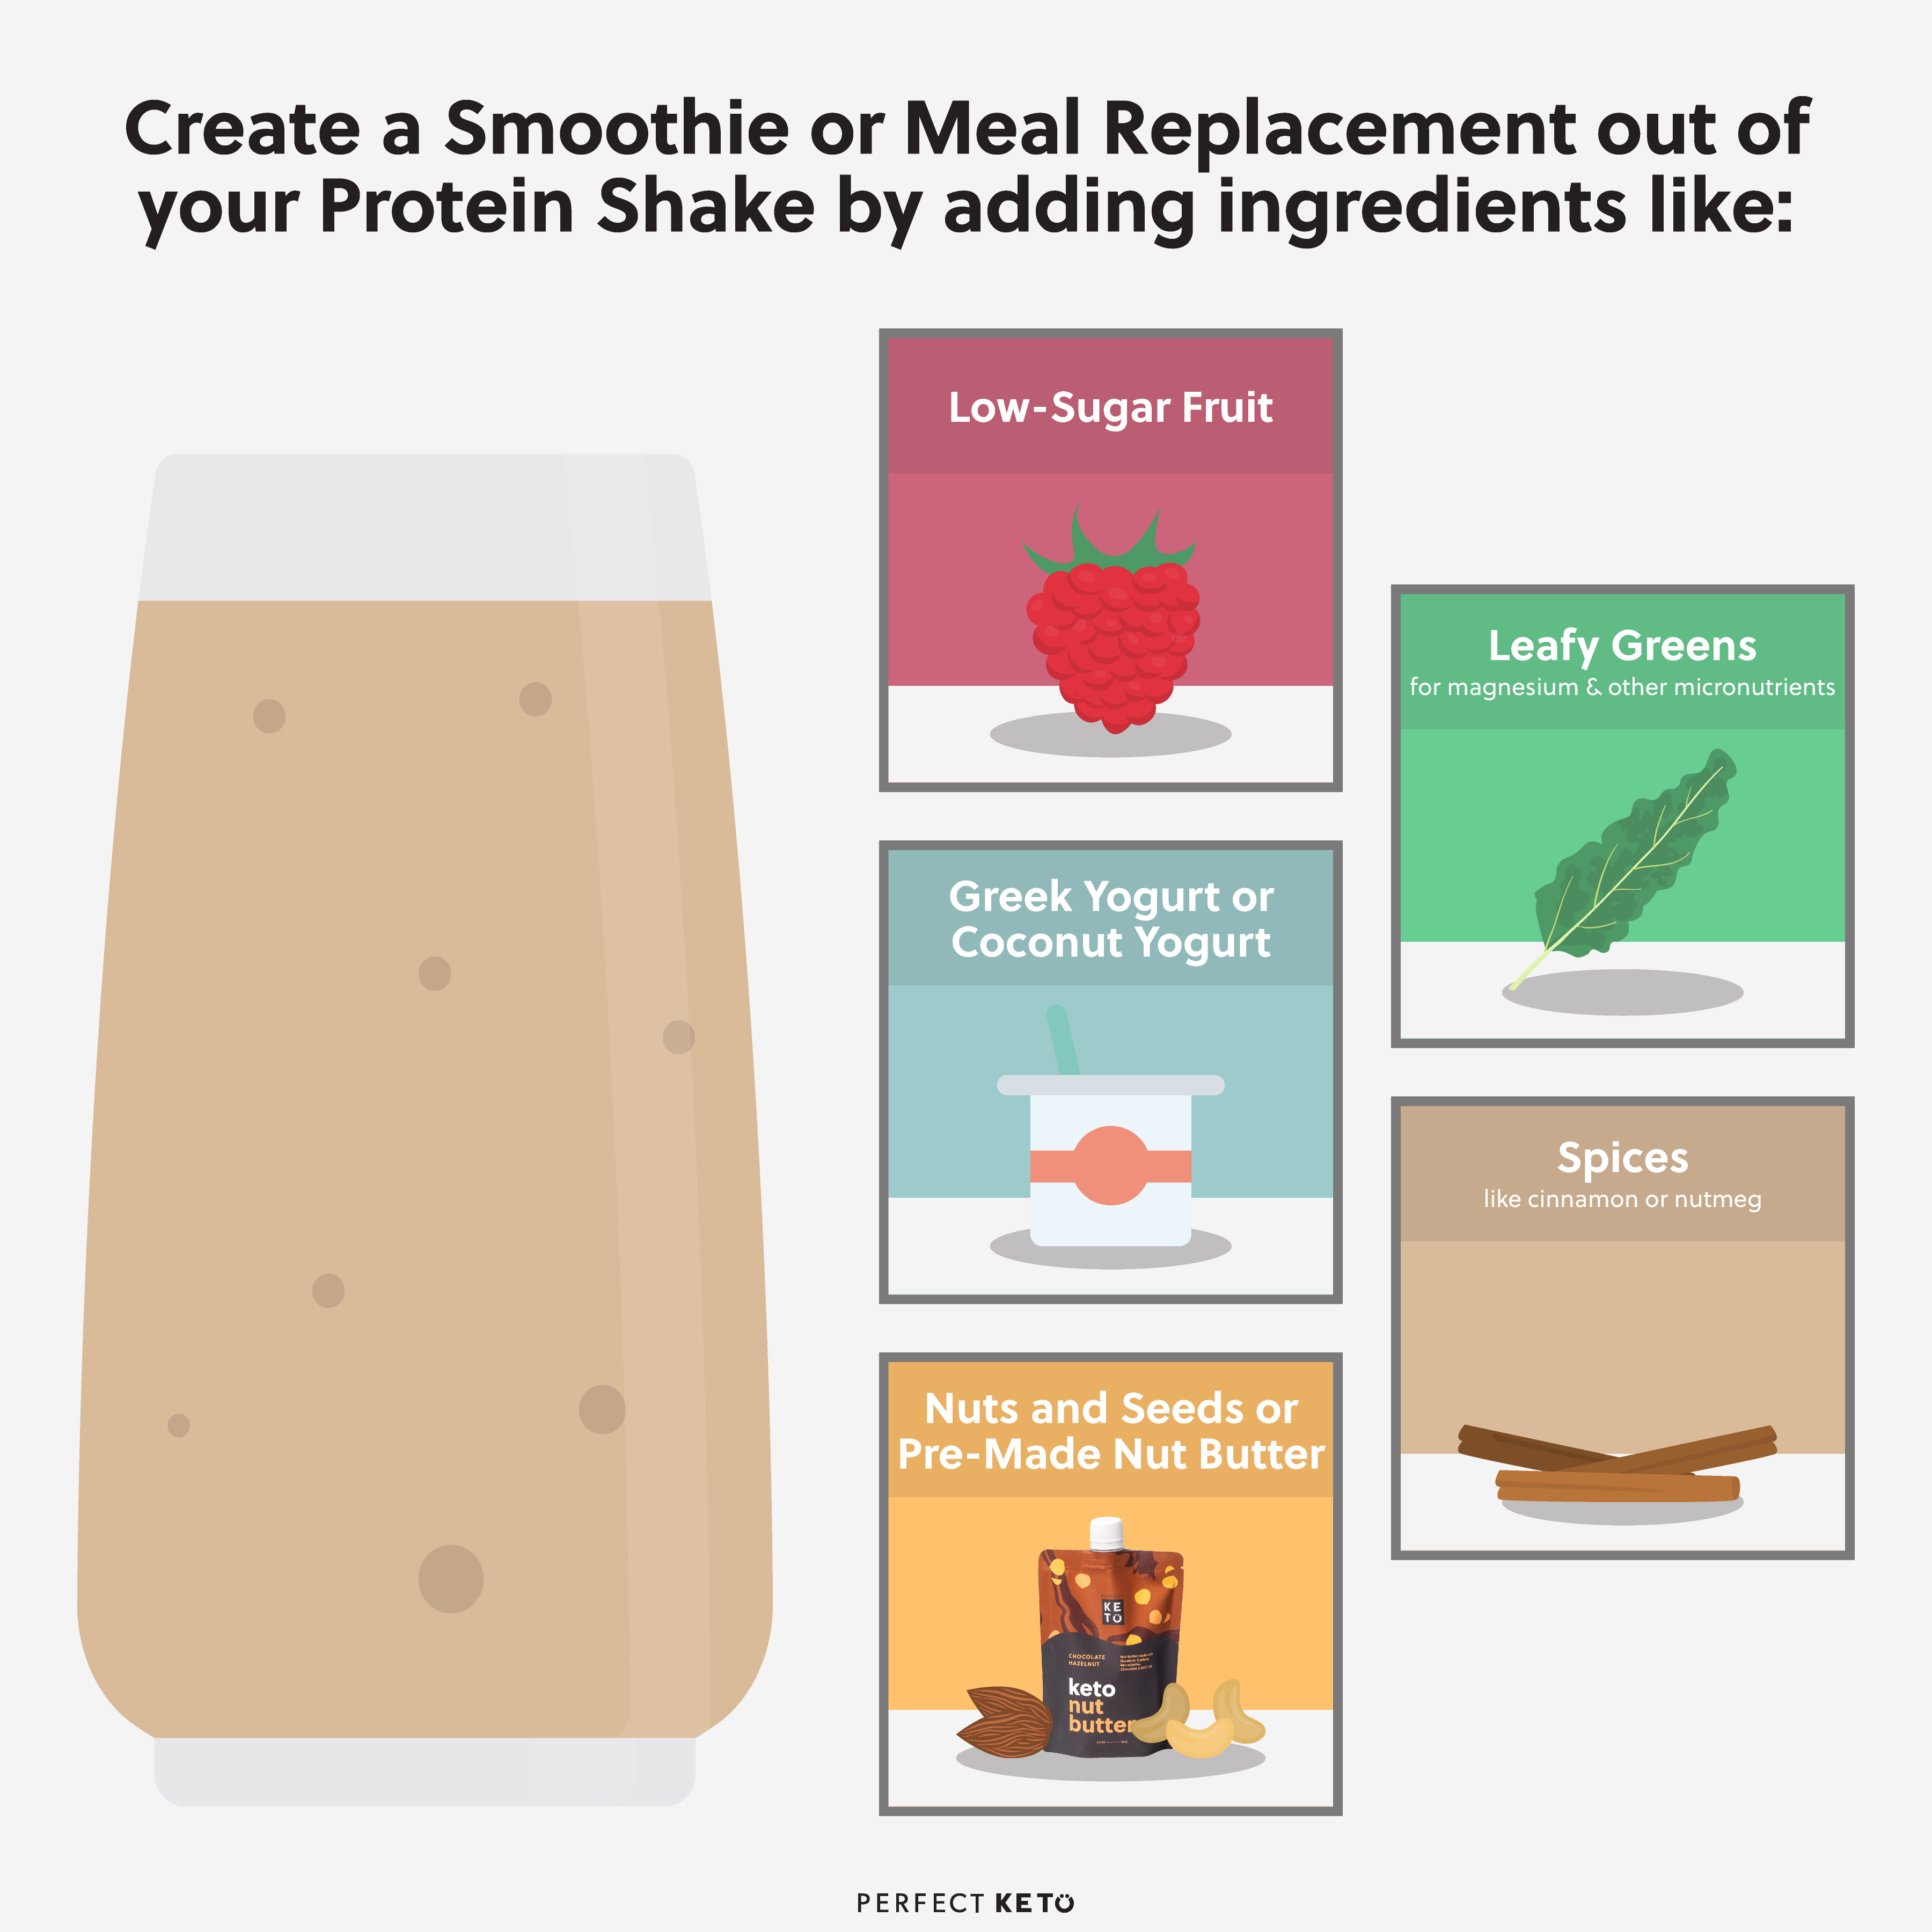 smoothie-meal-replacement-ingredients.jpg